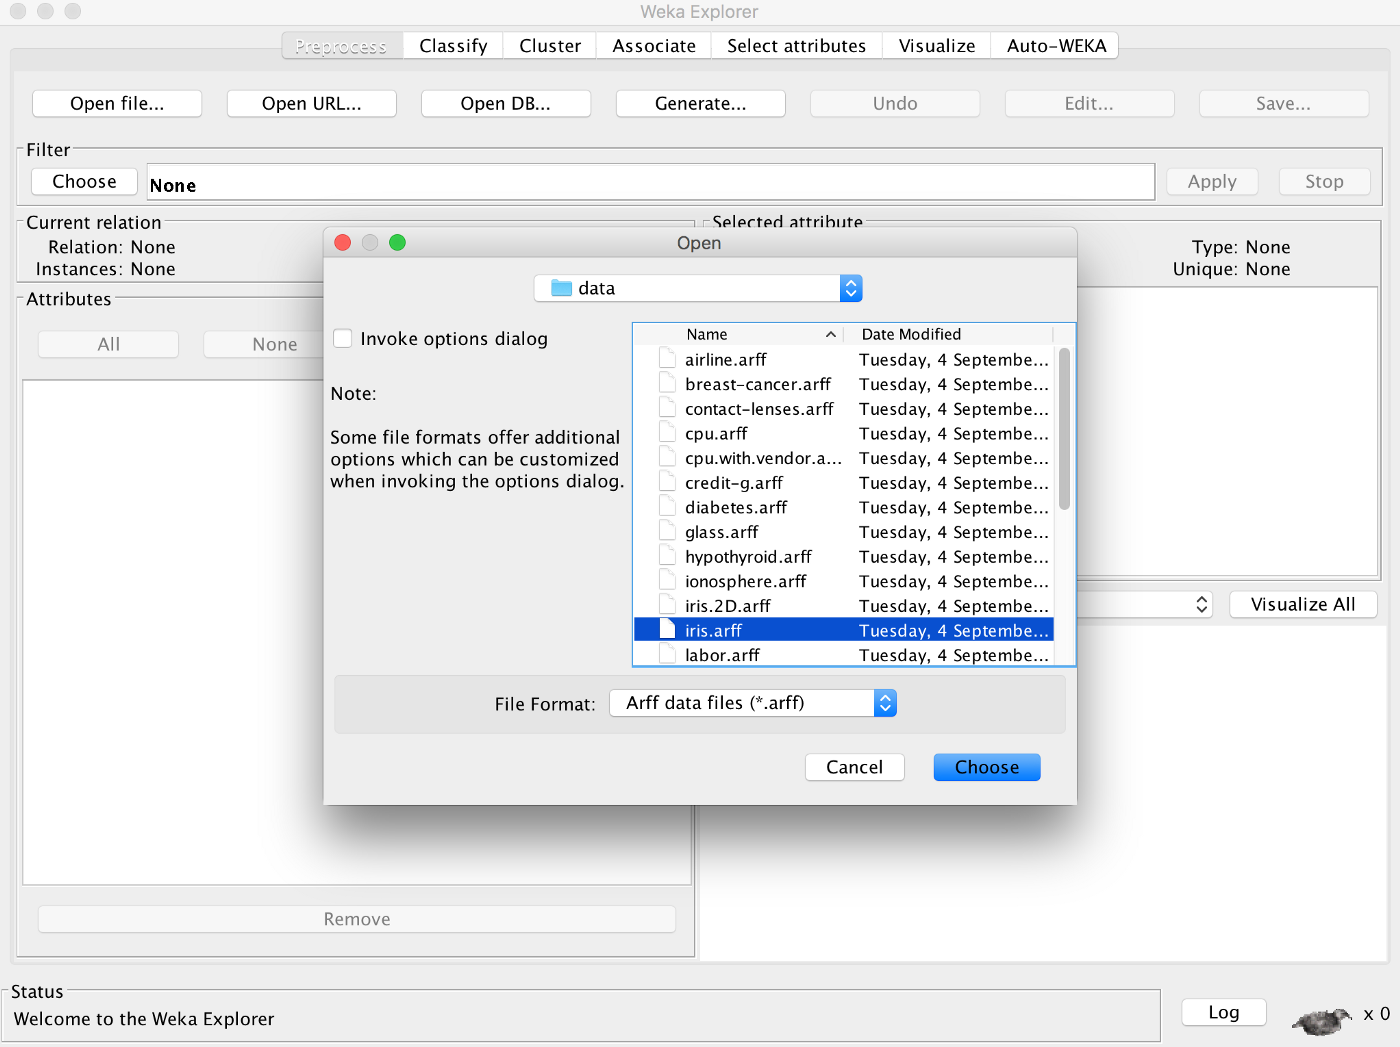 Getting Started With Weka 3 — Machine Learning on GUI